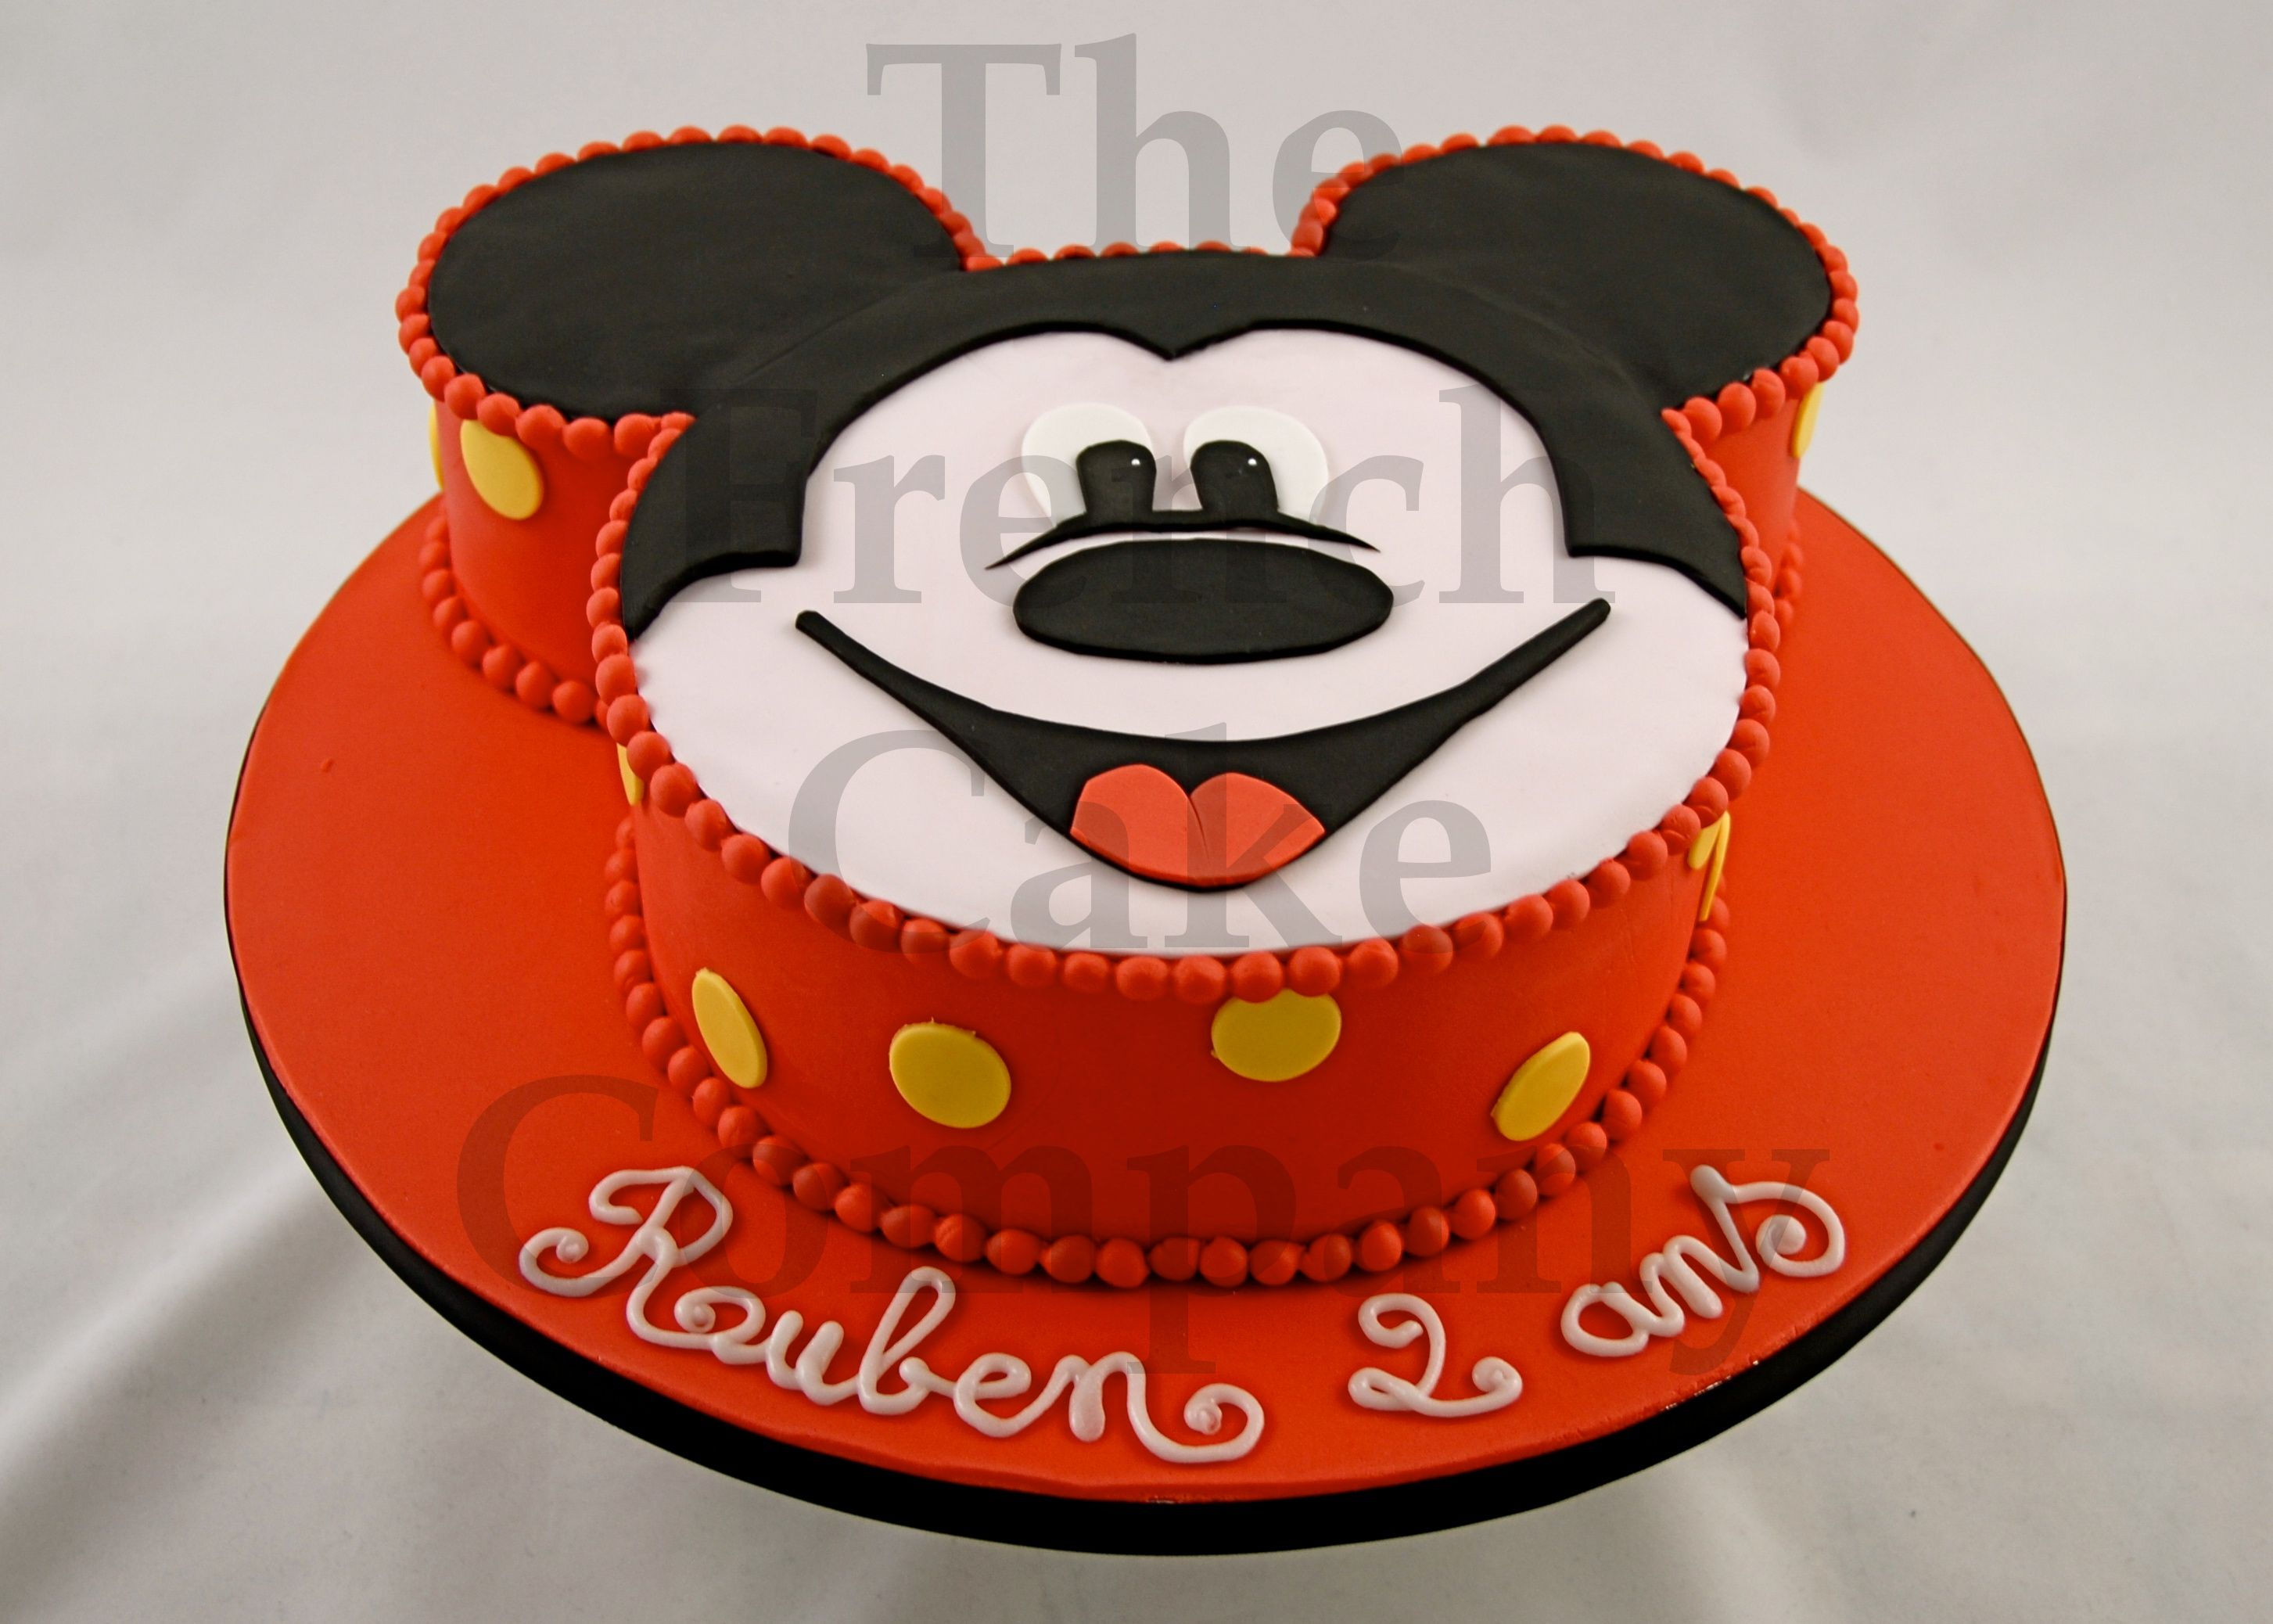 Gateau tete de mickey 3d home baking for you blog photo - Gateau mickey facile ...